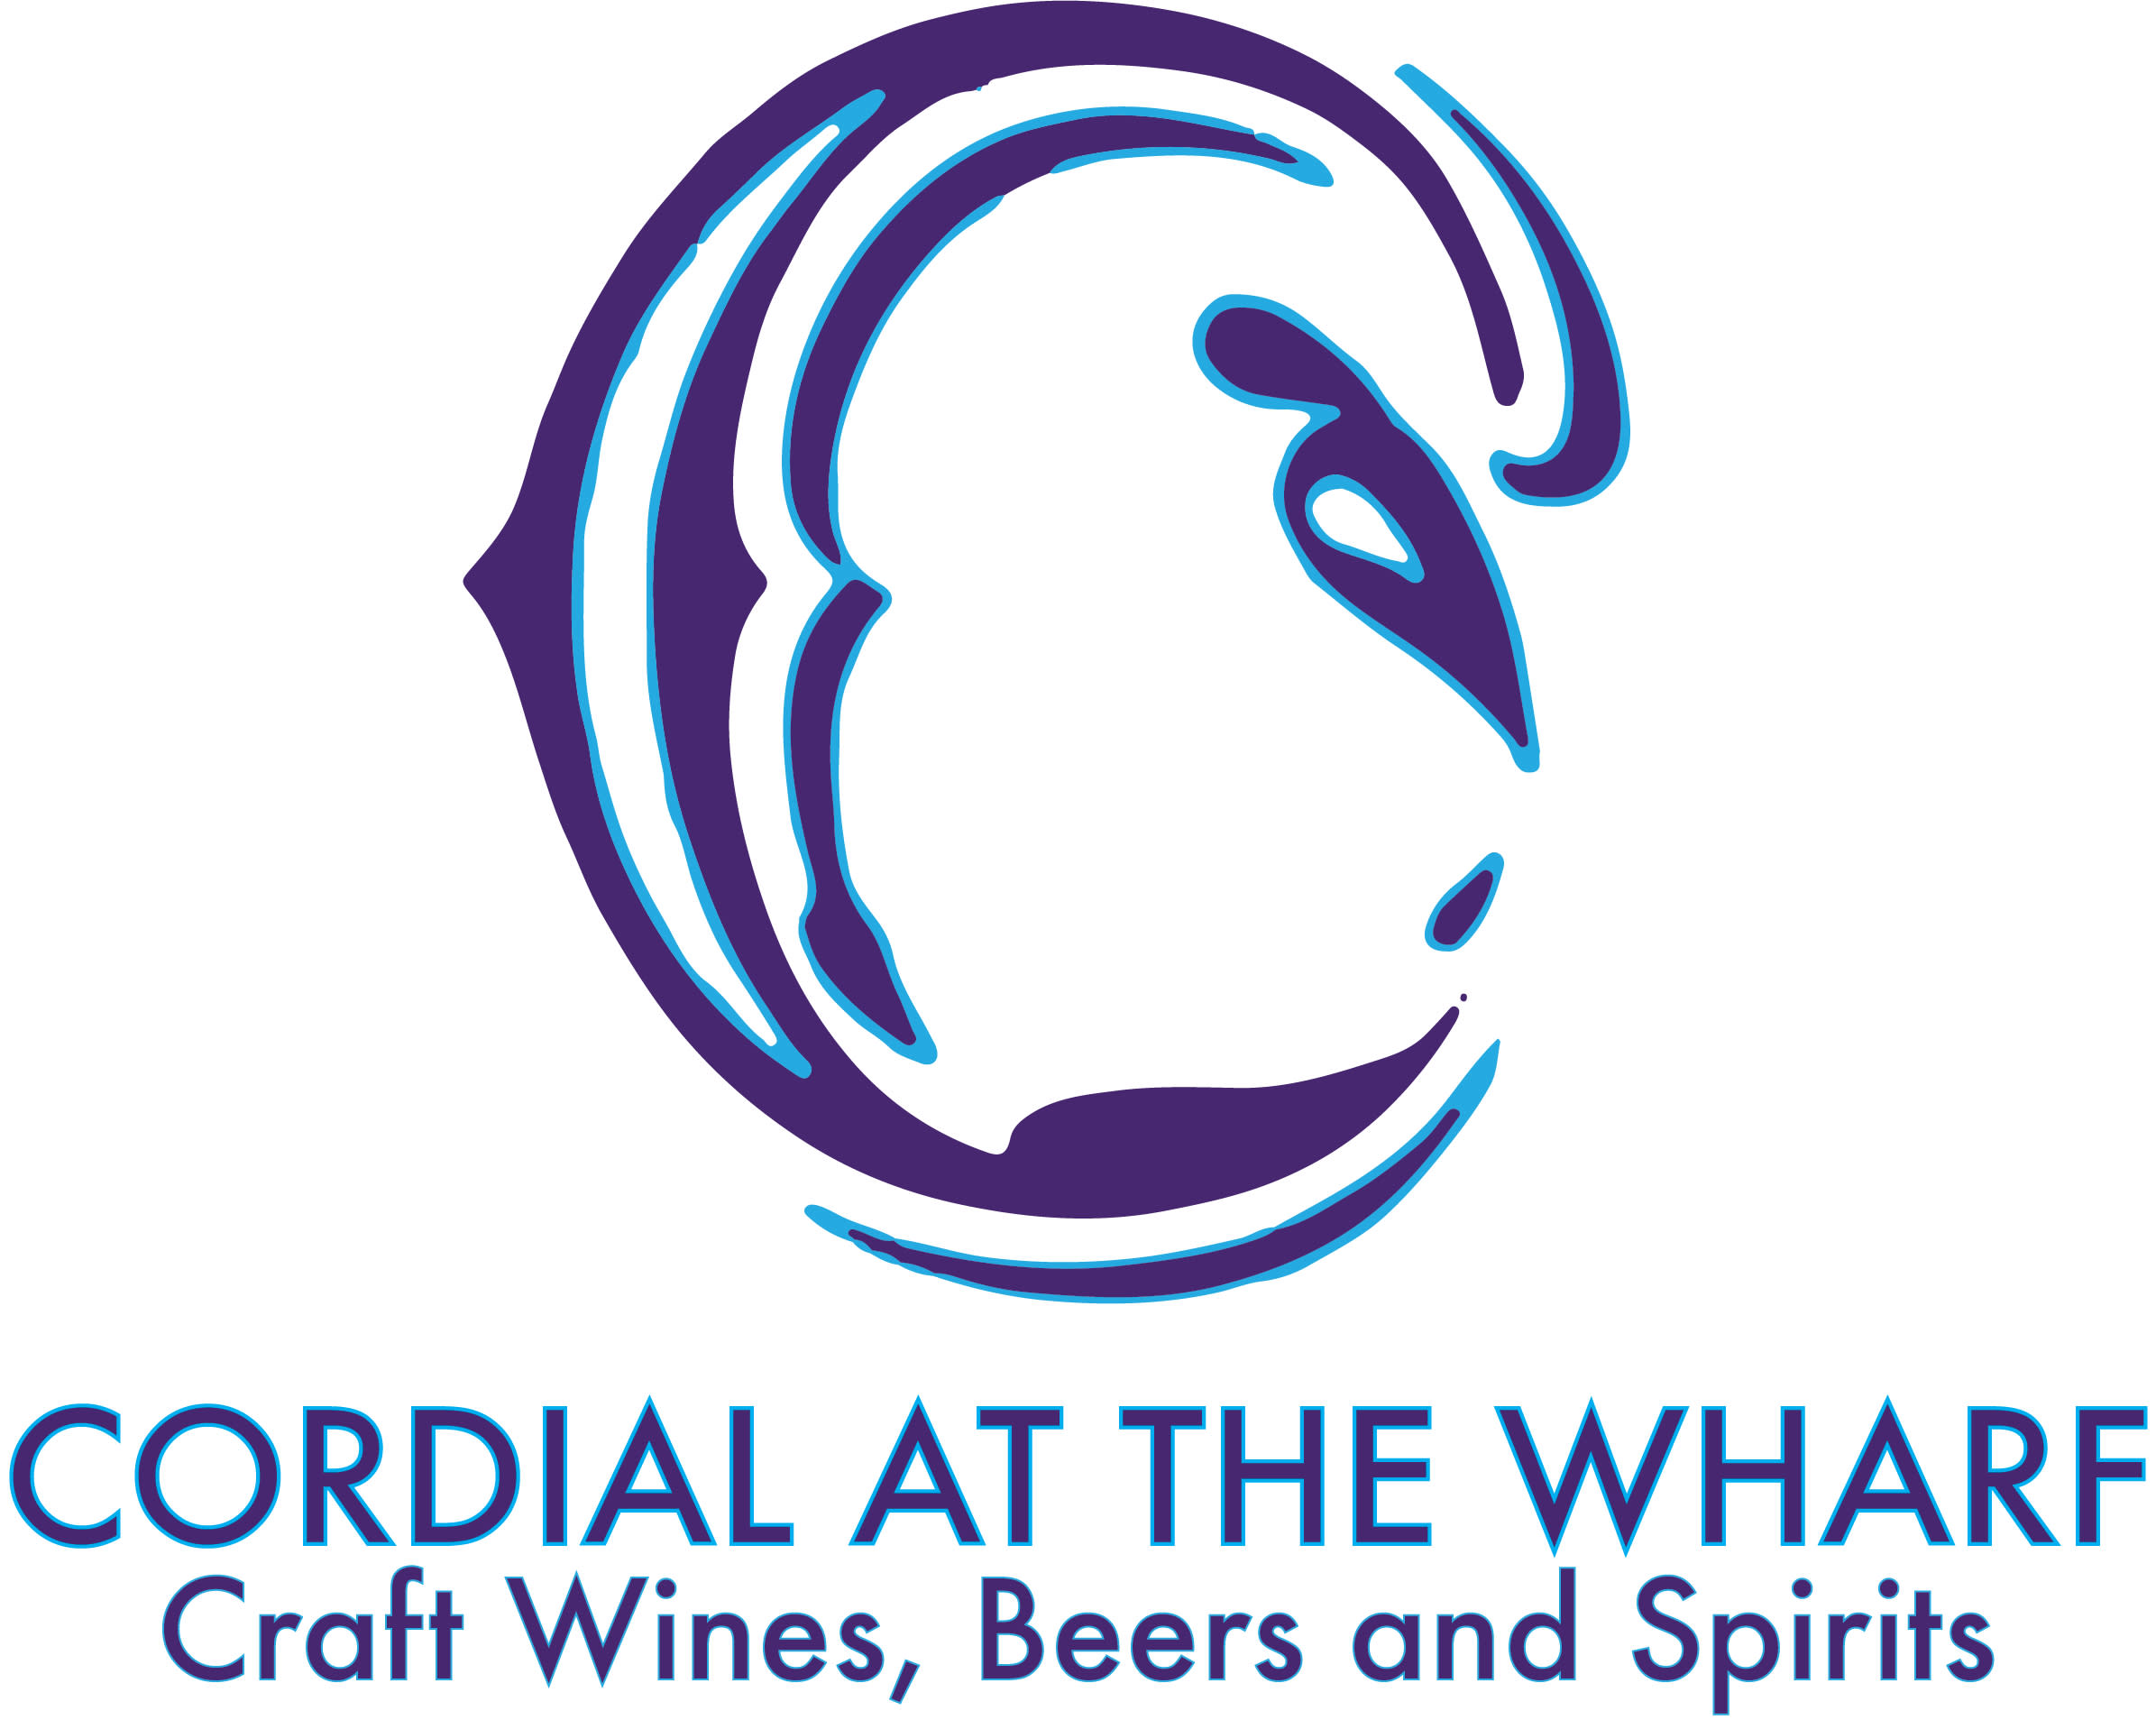 Cordial at the Wharf: Craft Wine, Beer and Spirits